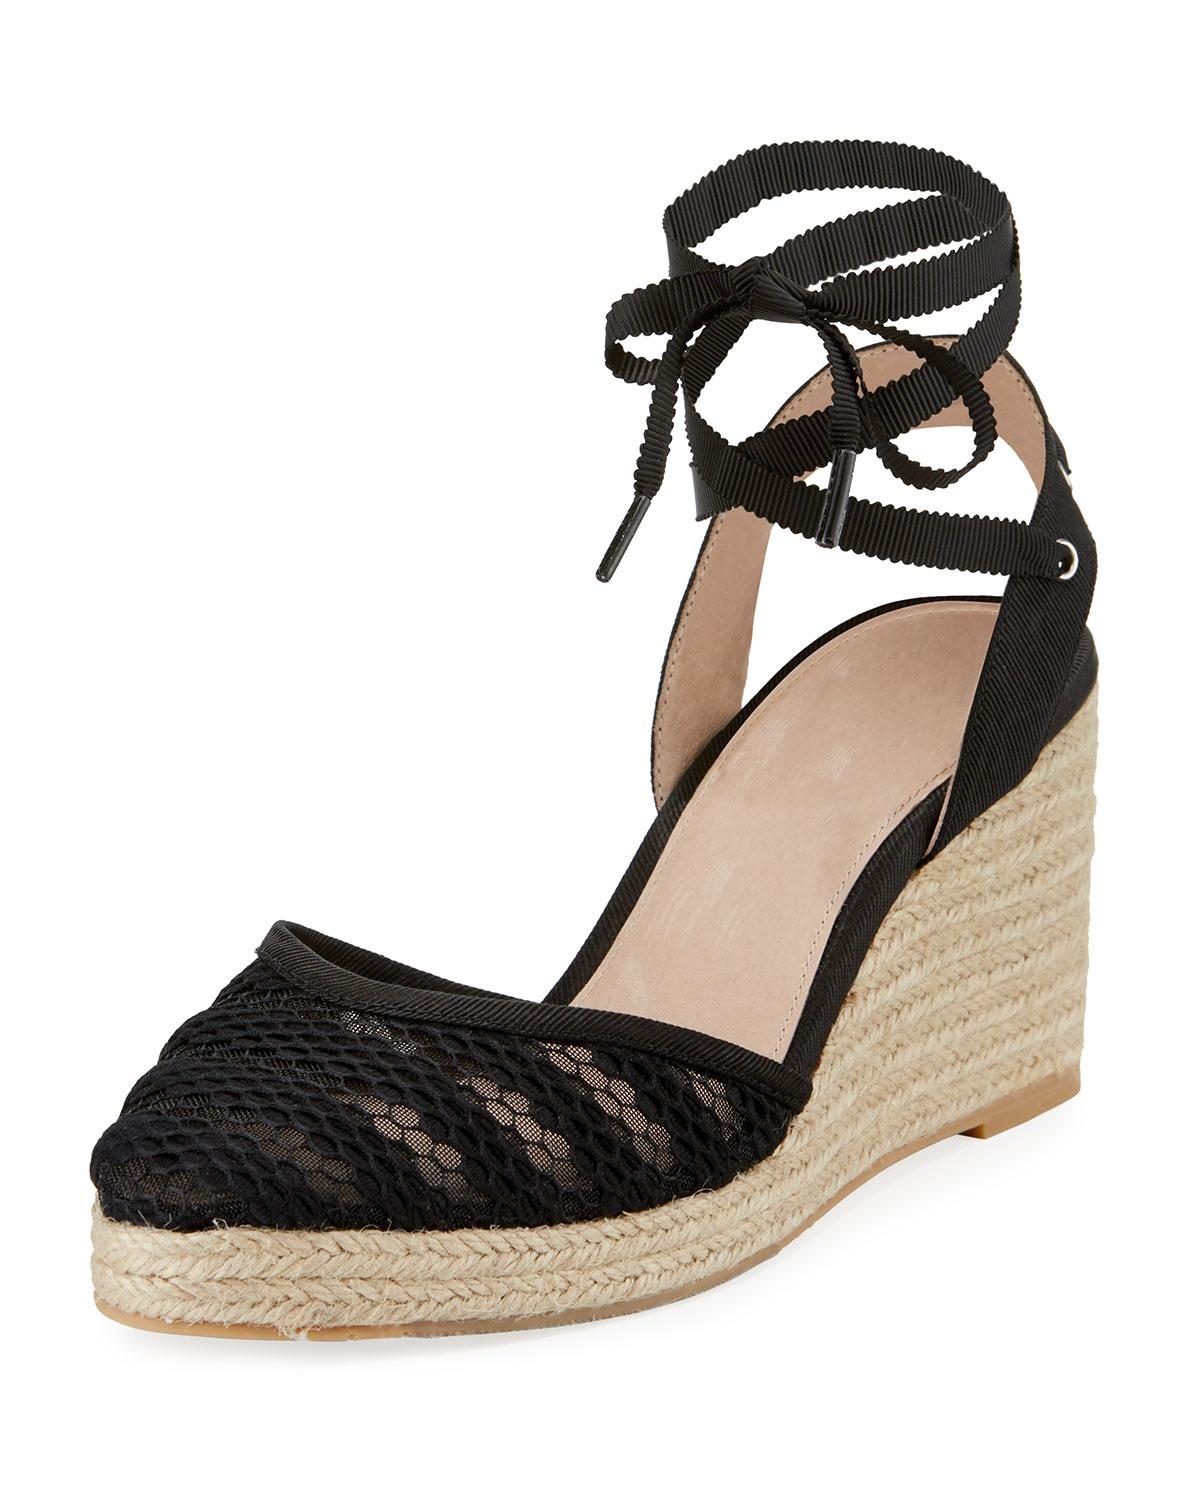 Adrianna Papell Penny Lace Ankle Espadrille Beige In Black Pattern